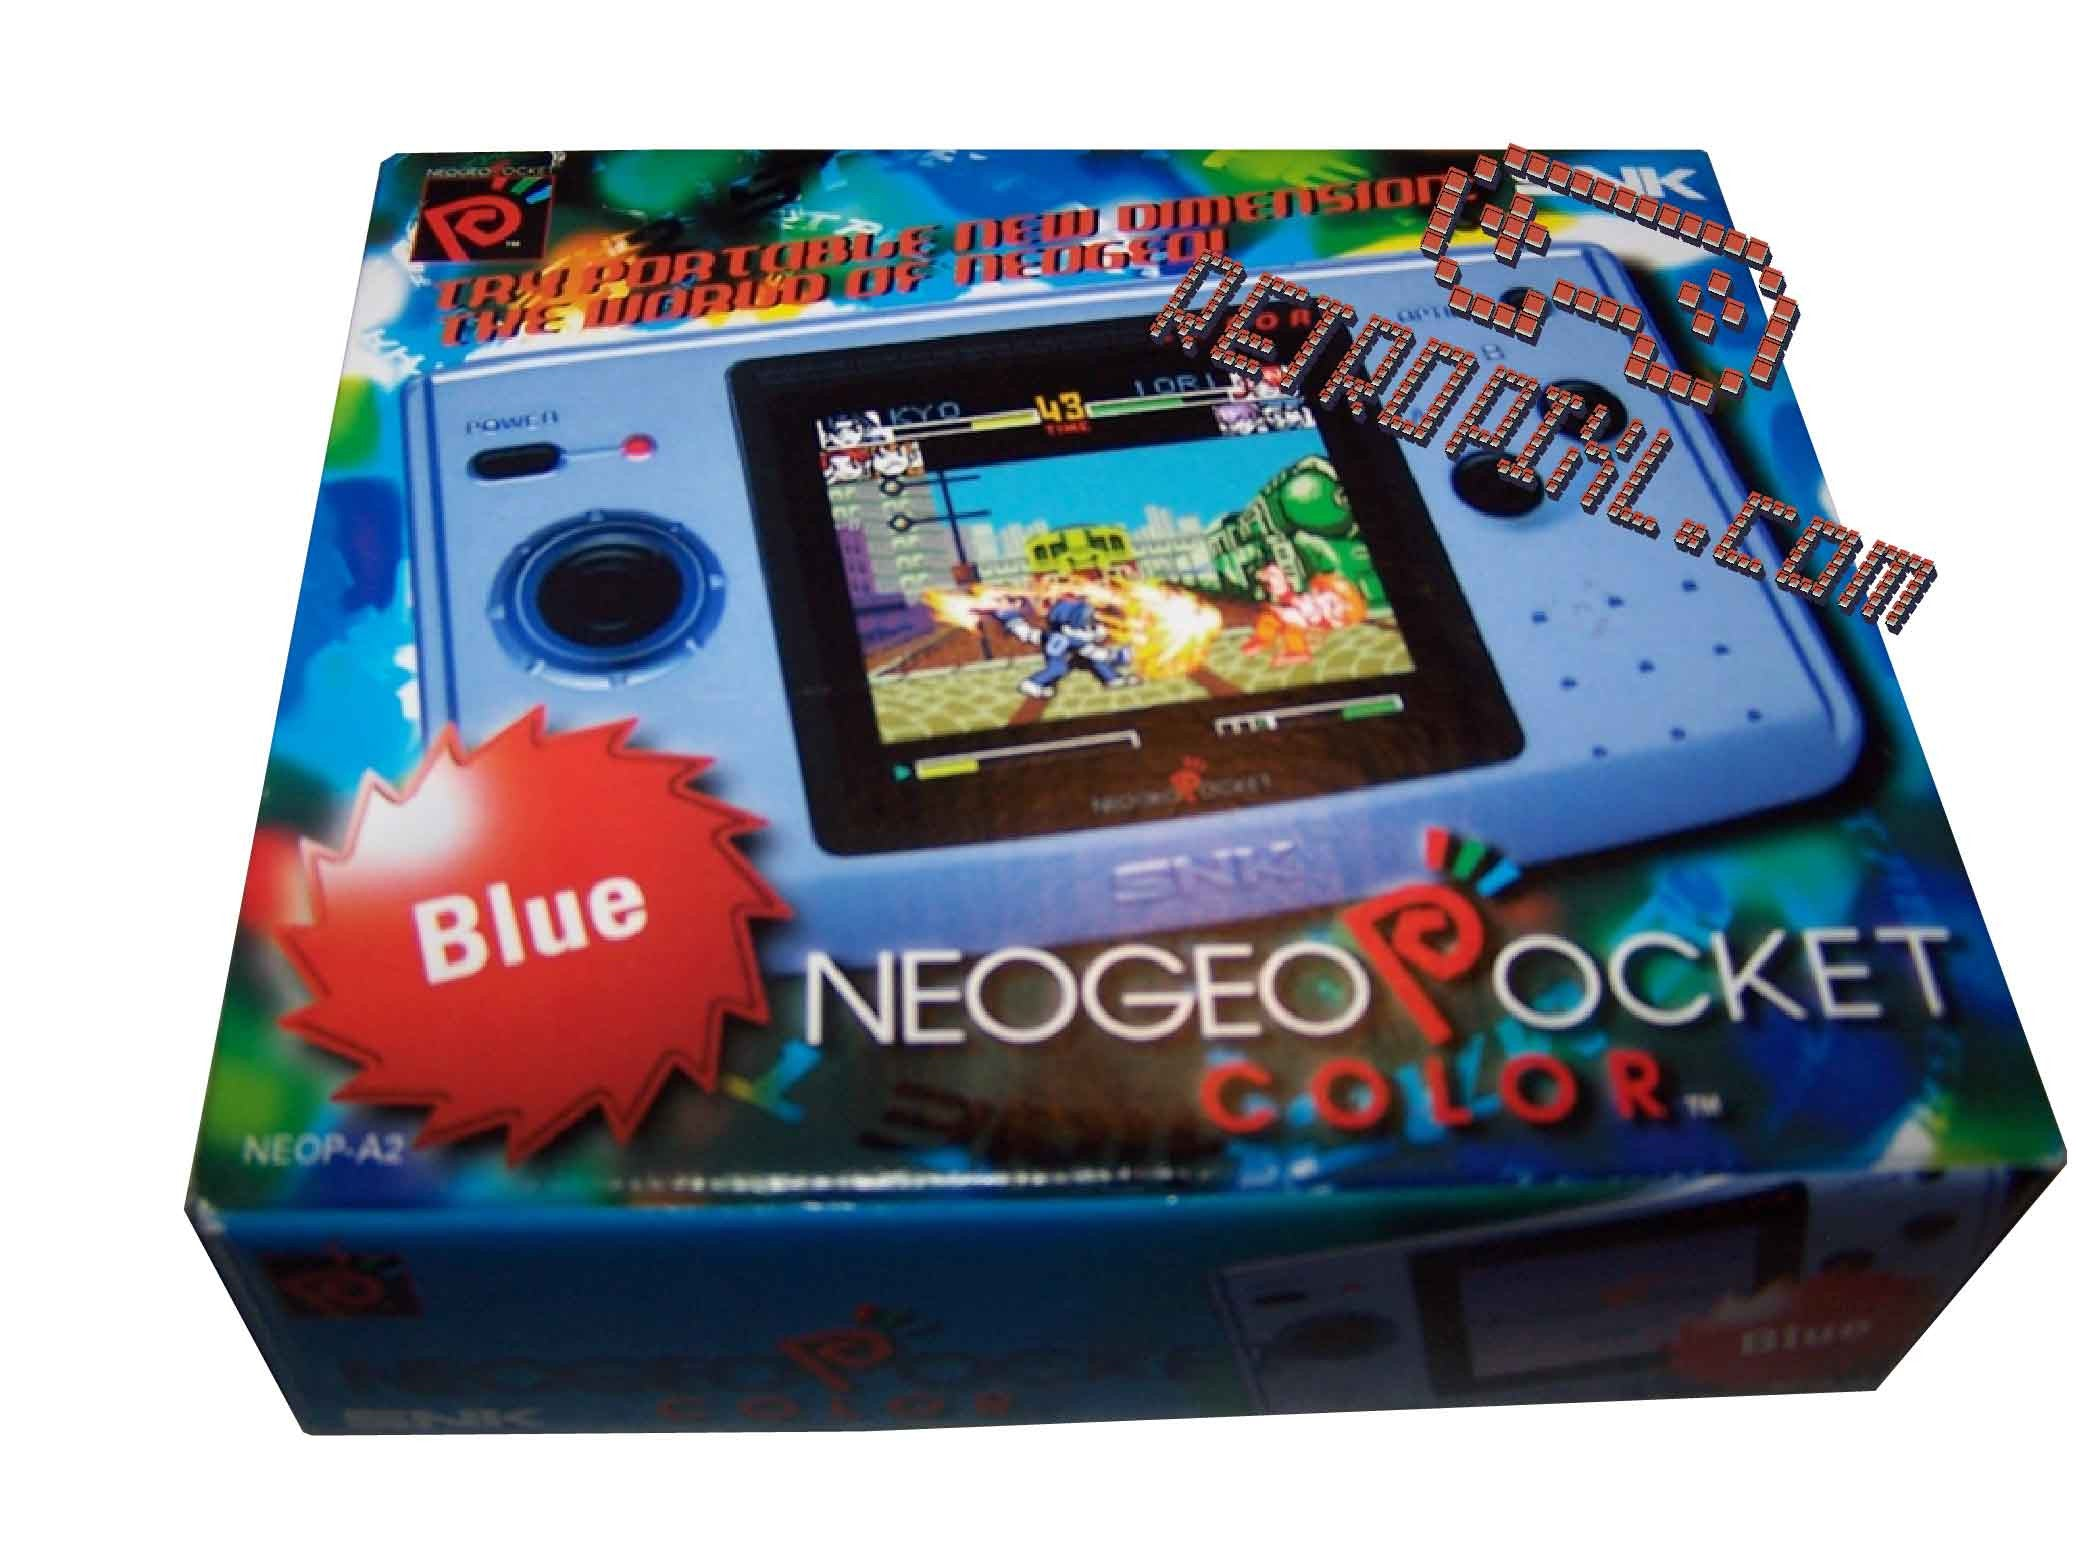 RetroPixl Retrogaming SNK Neo Geo pocket Color